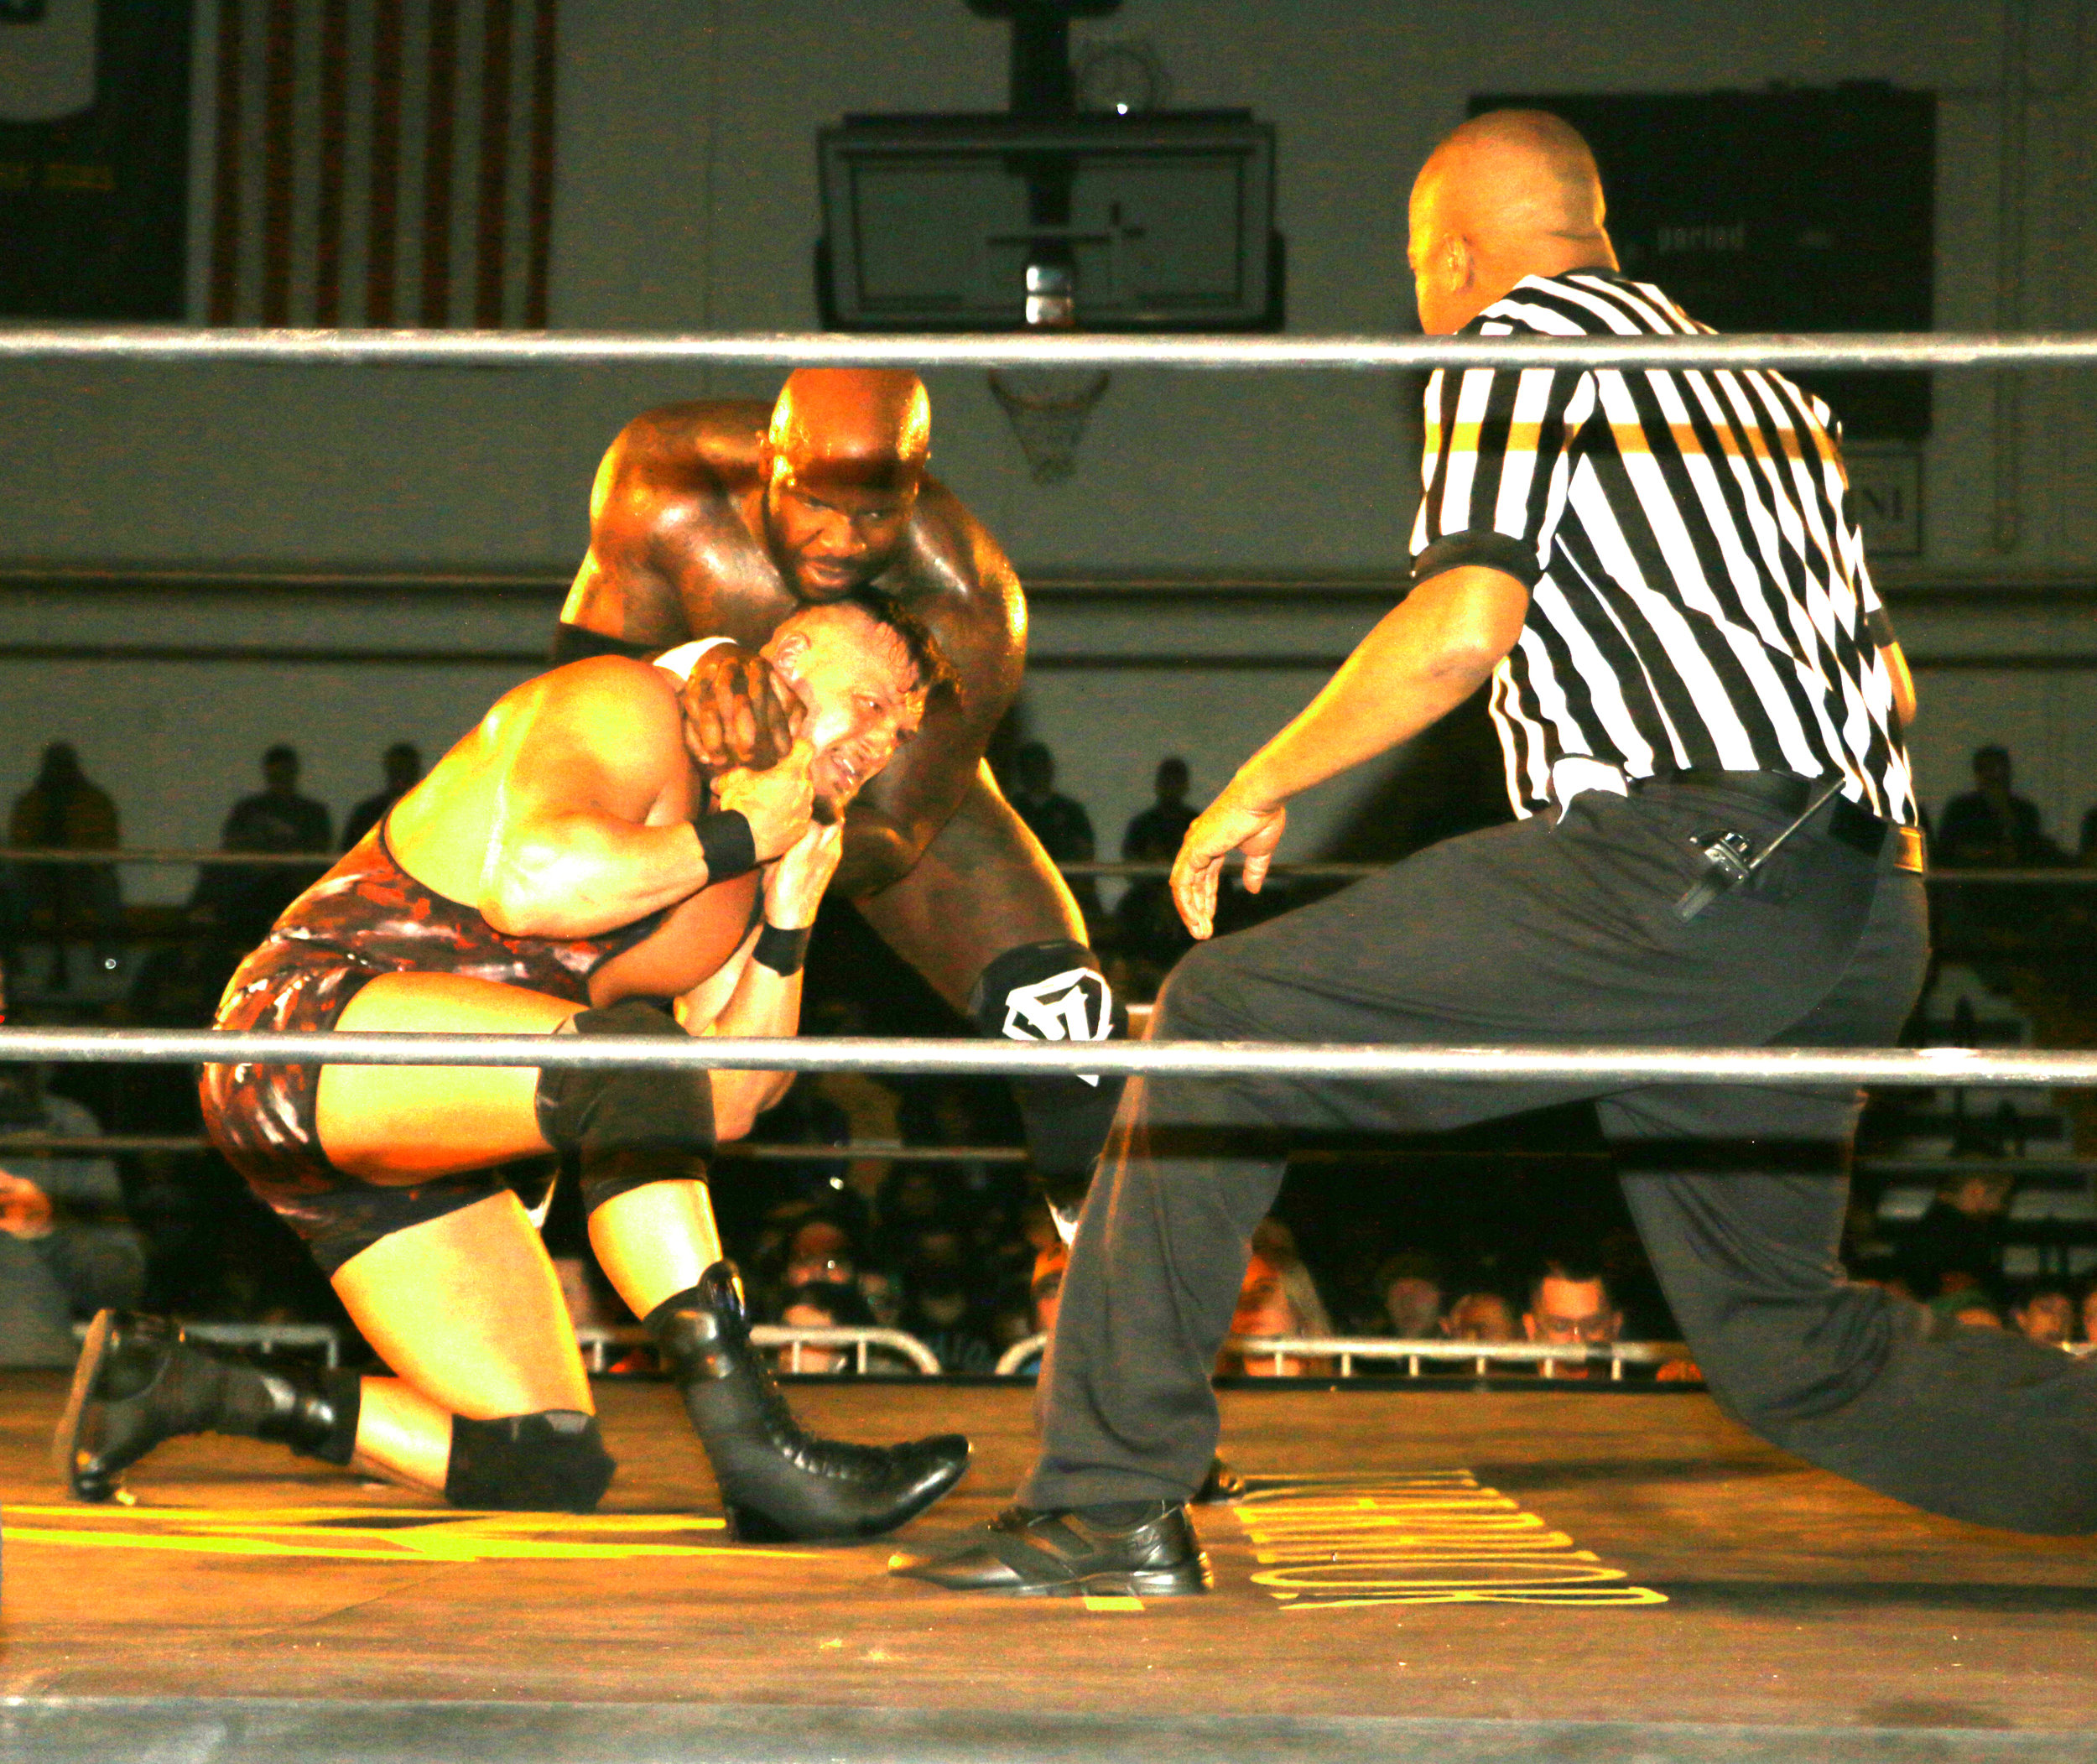 Referee Robert King checks on Wardlow as Moose continues with the headlock.